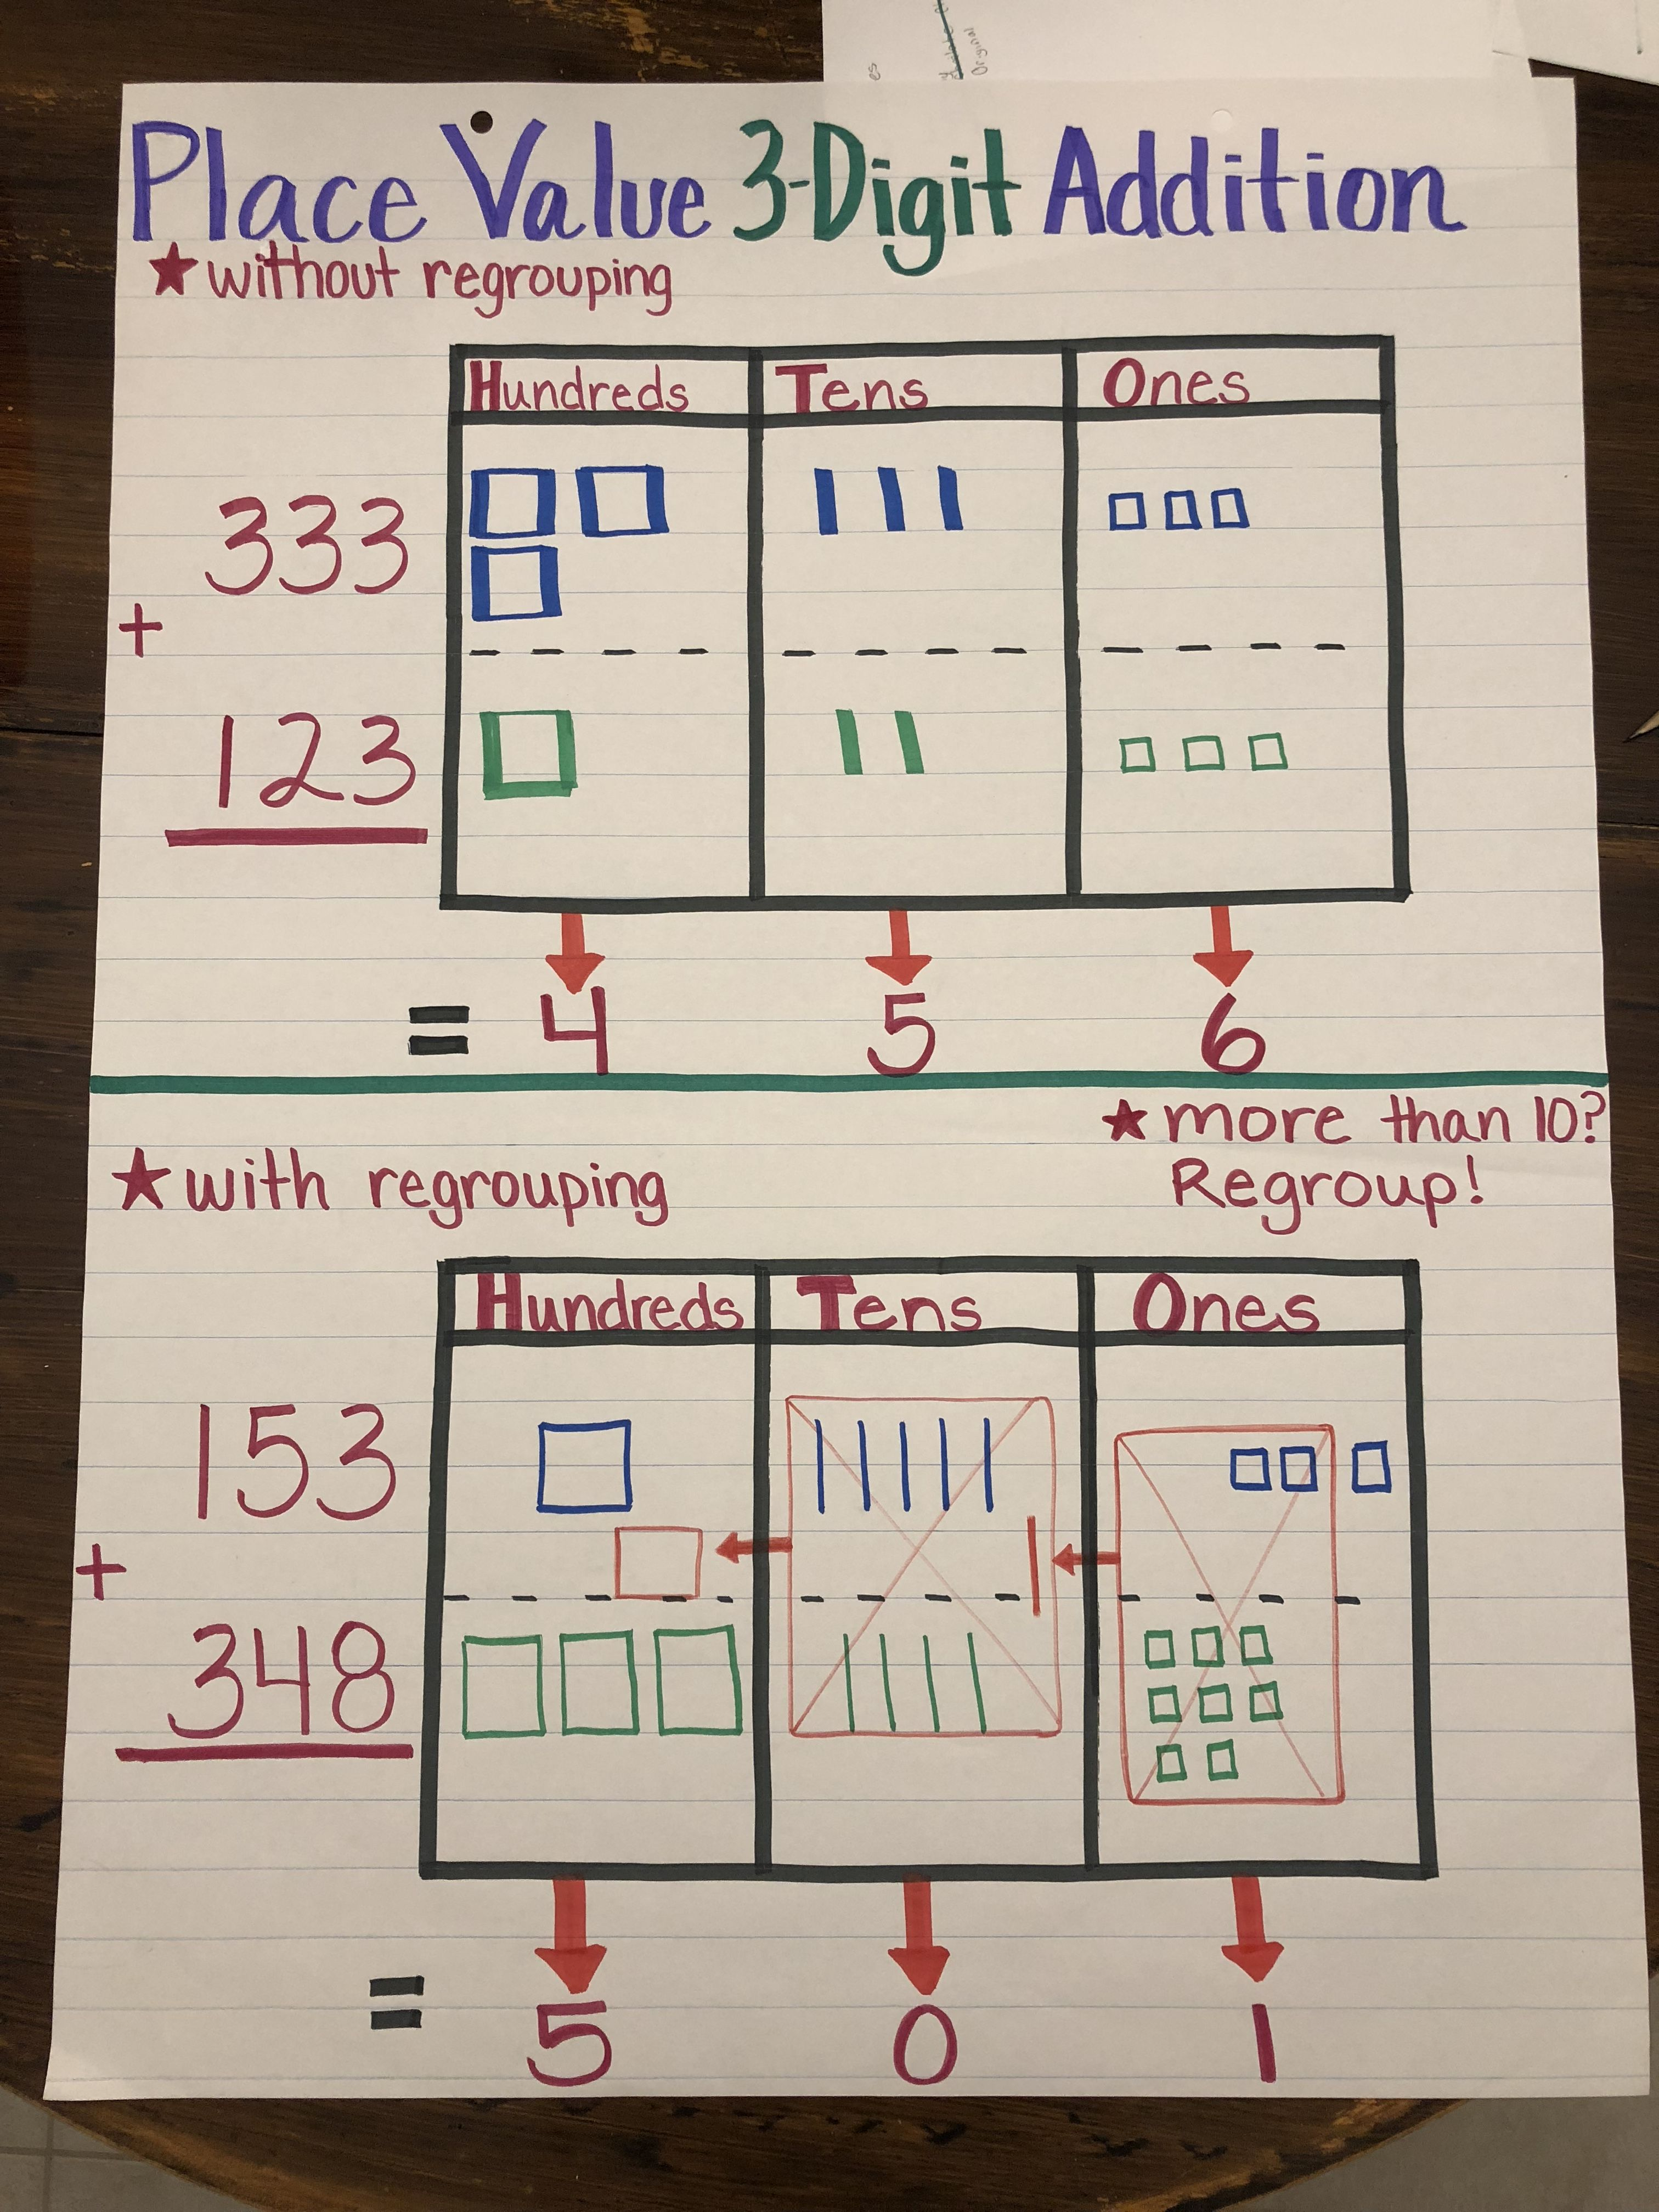 hight resolution of Place Value 3-Digit Addition with and without regrouping anchor chart.    Math charts